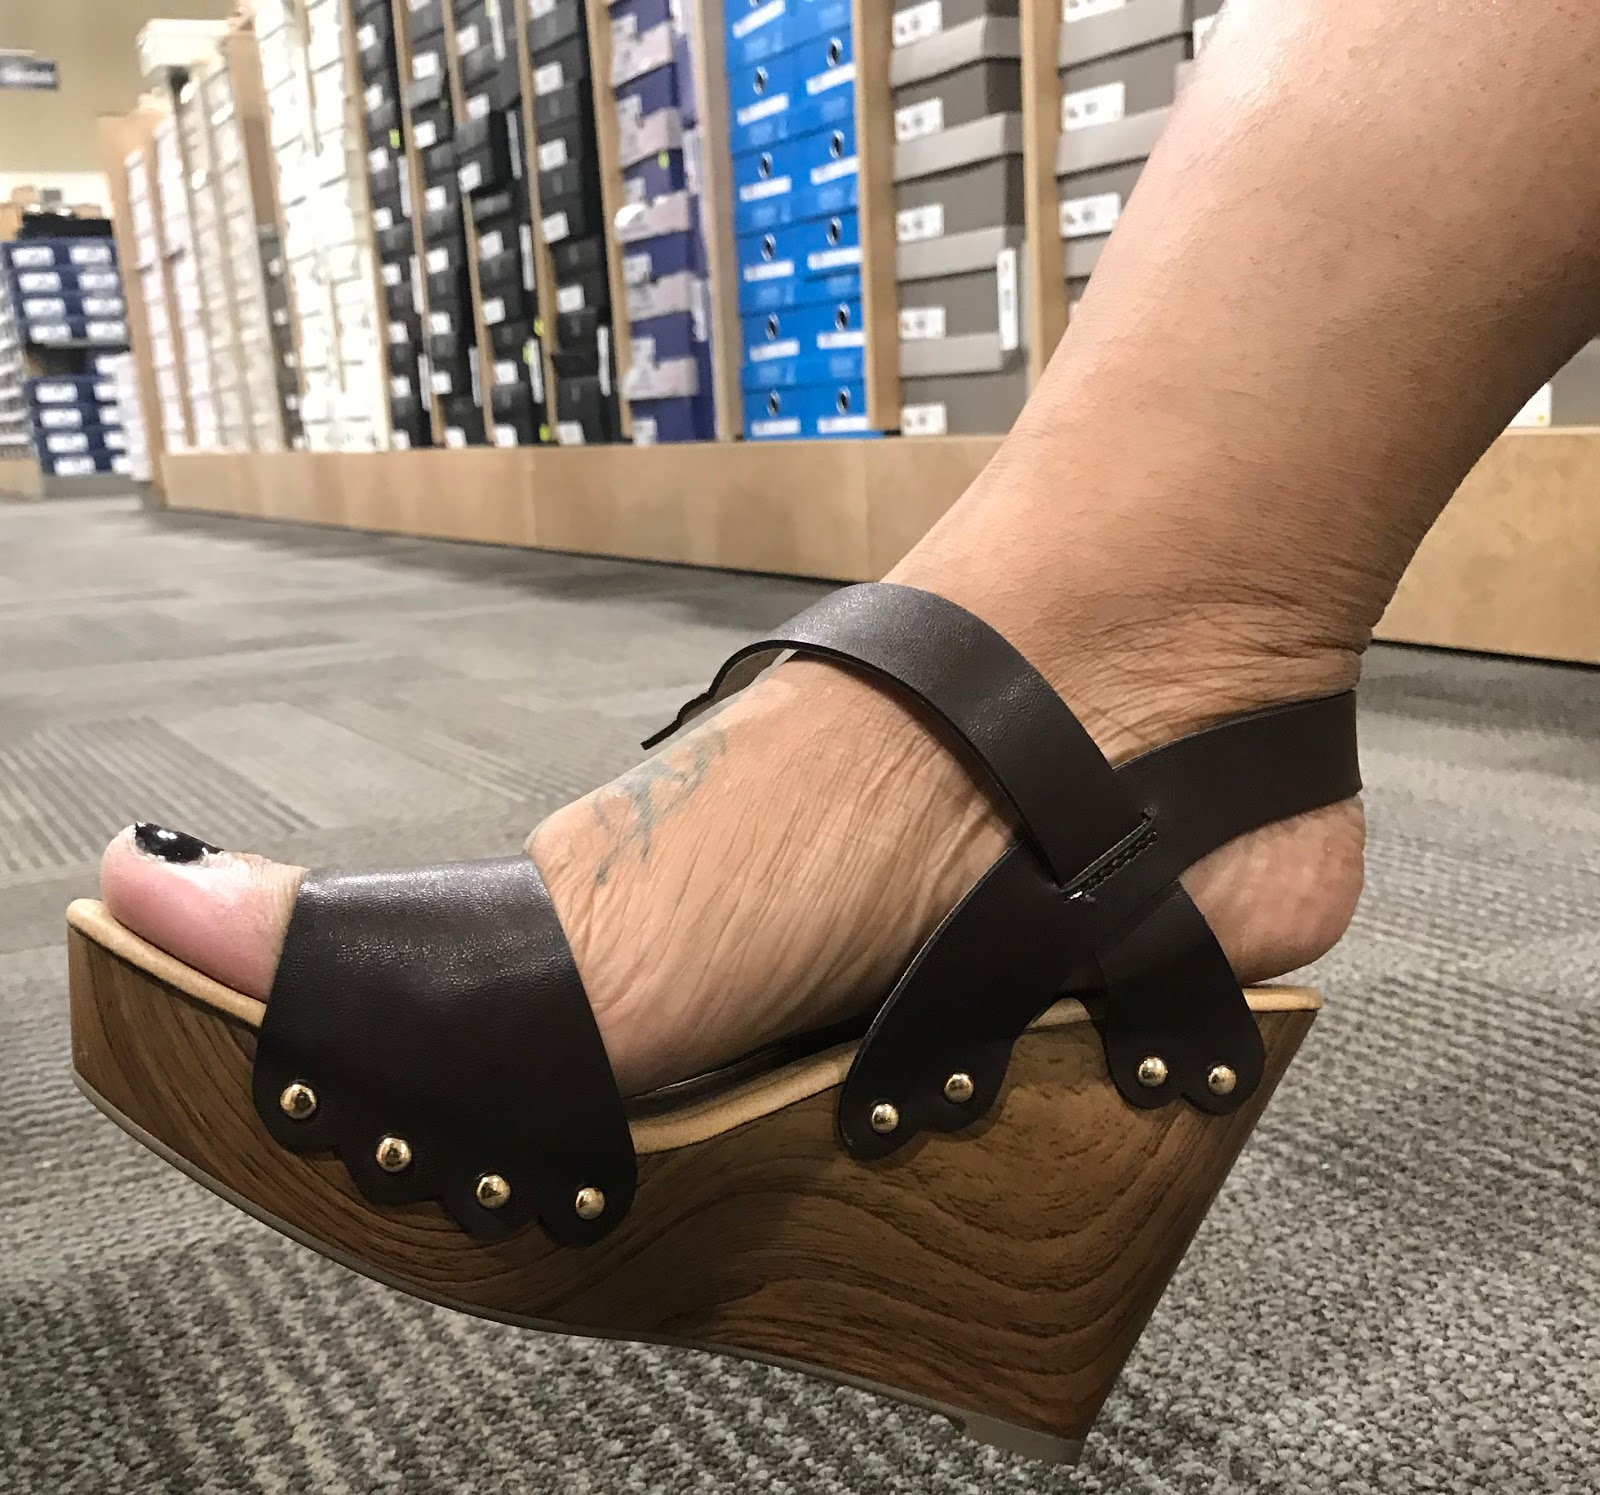 Image: Woman trying on wood shoes for haul. Later I tried on a candy style wood shoe that had a nice high wedge. The bad part was my natural heel was hanging off the back of the shoe.